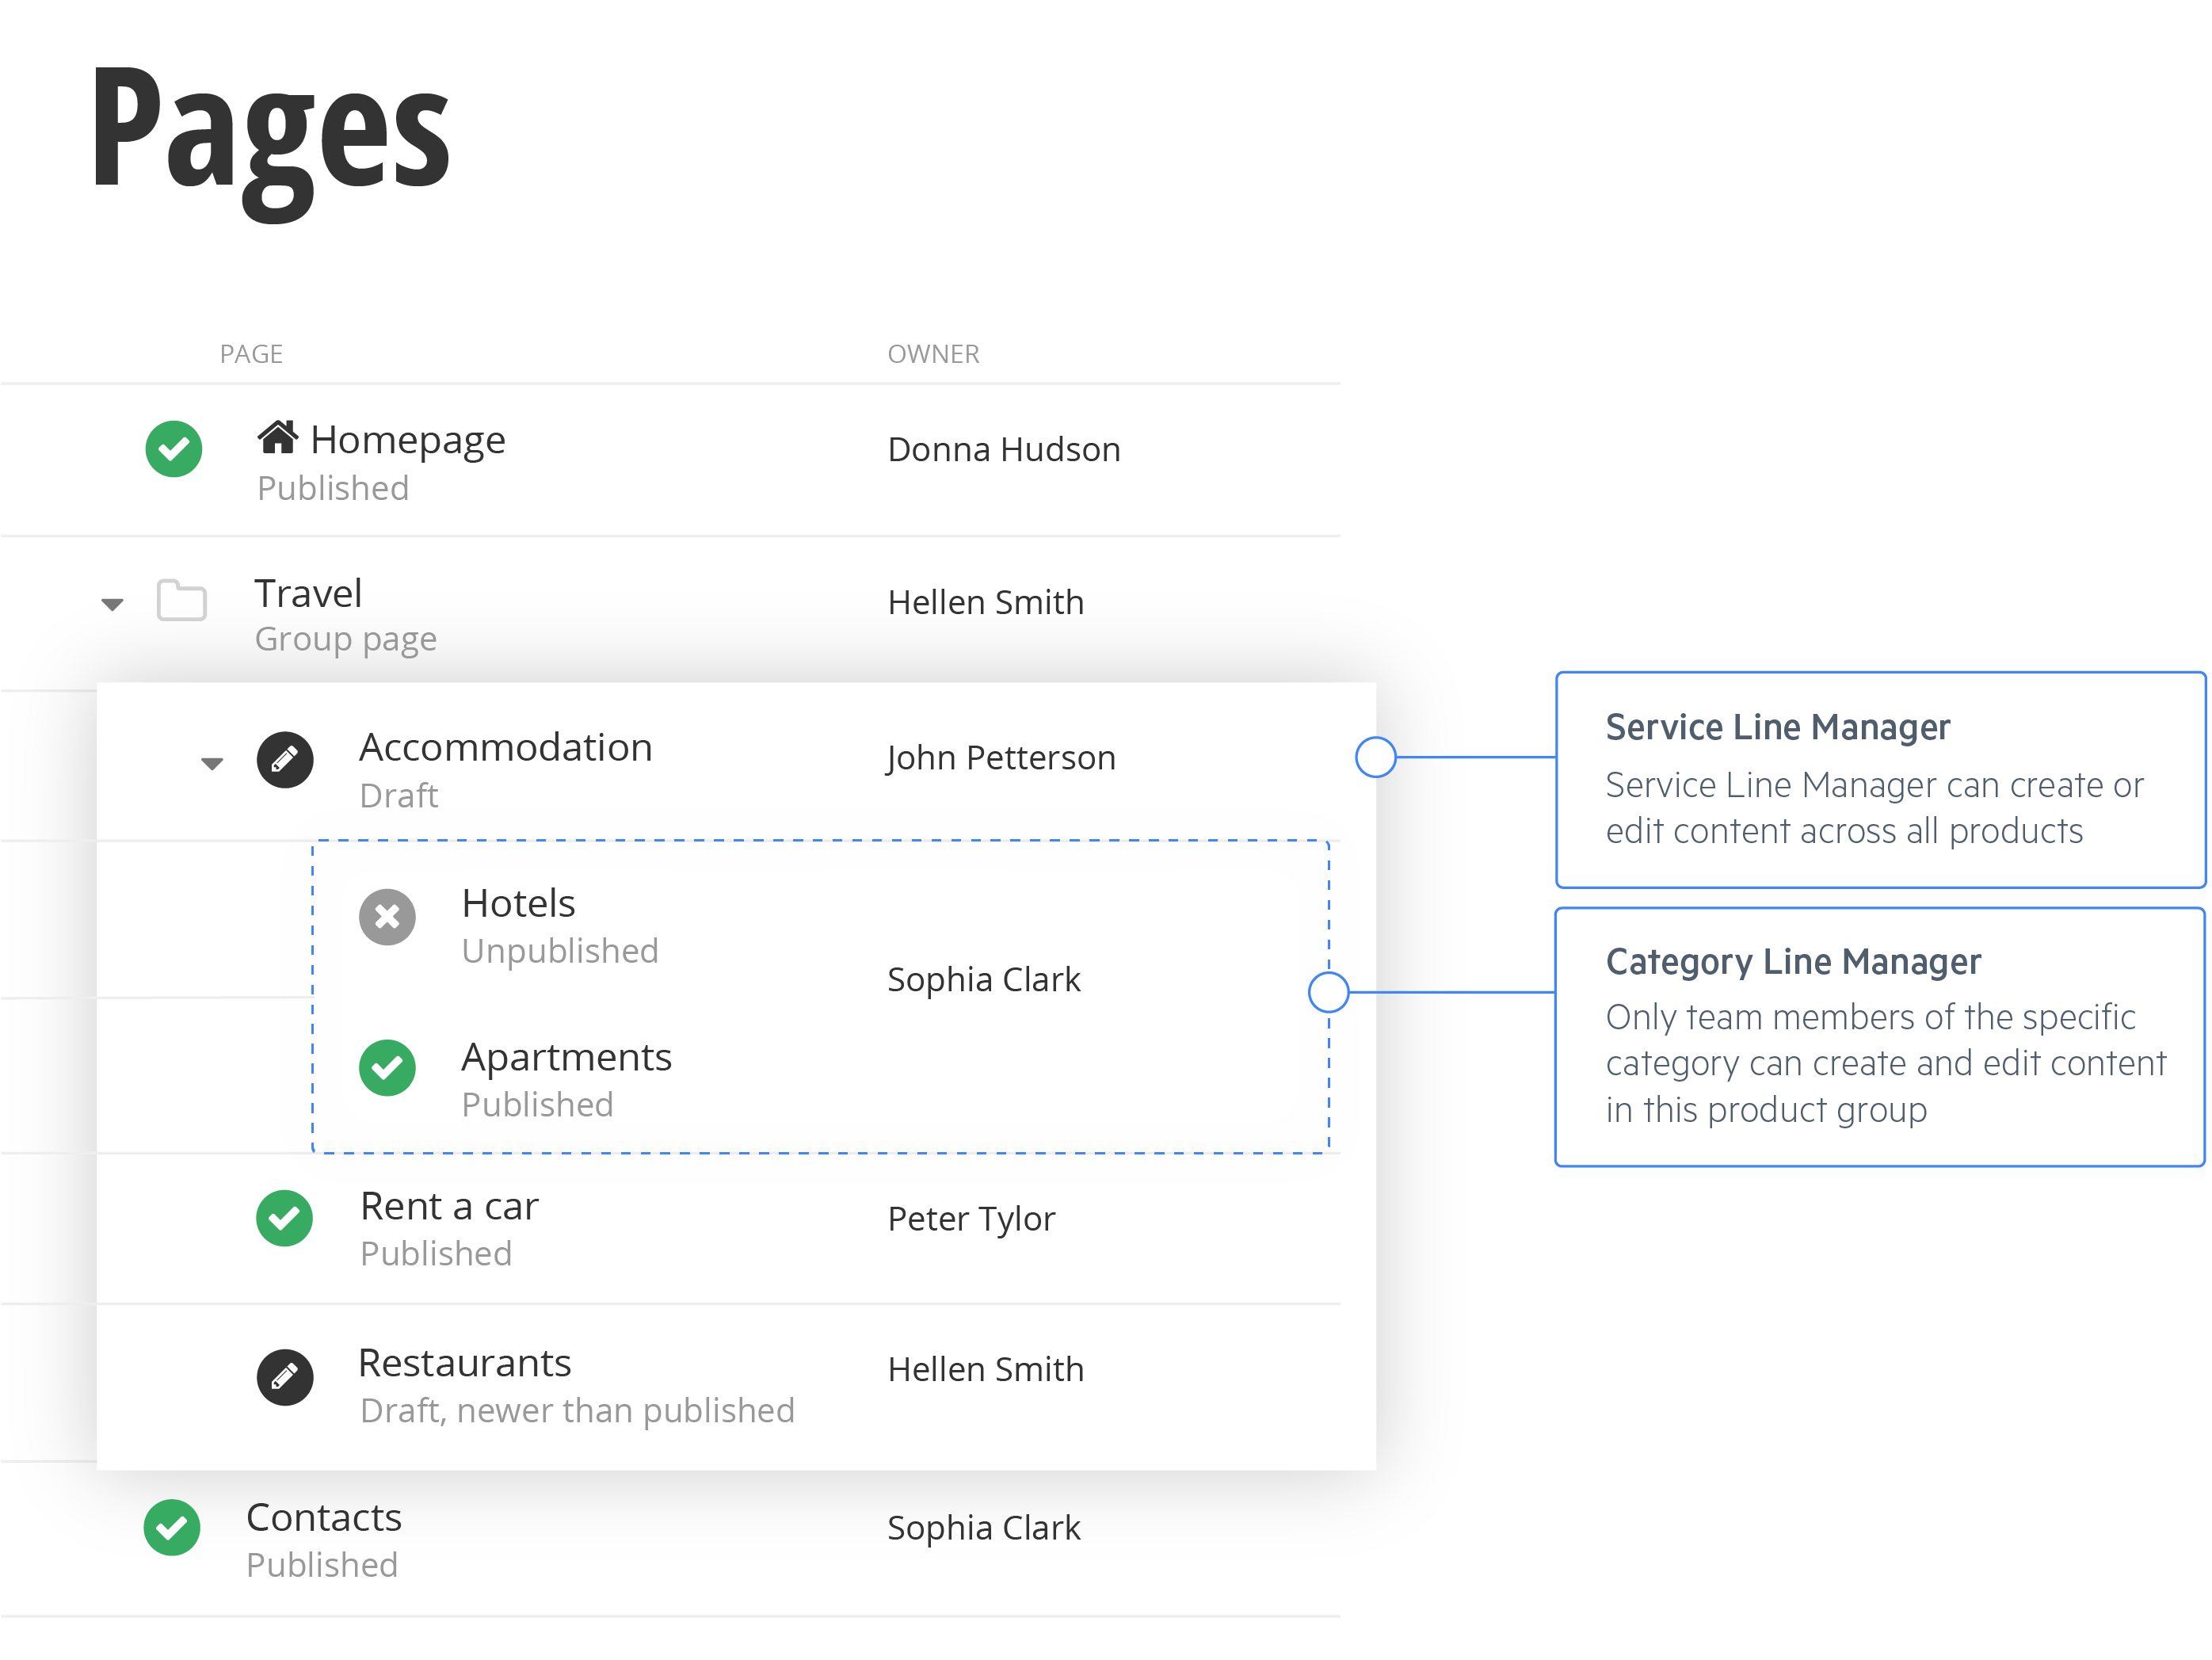 Access Permissions